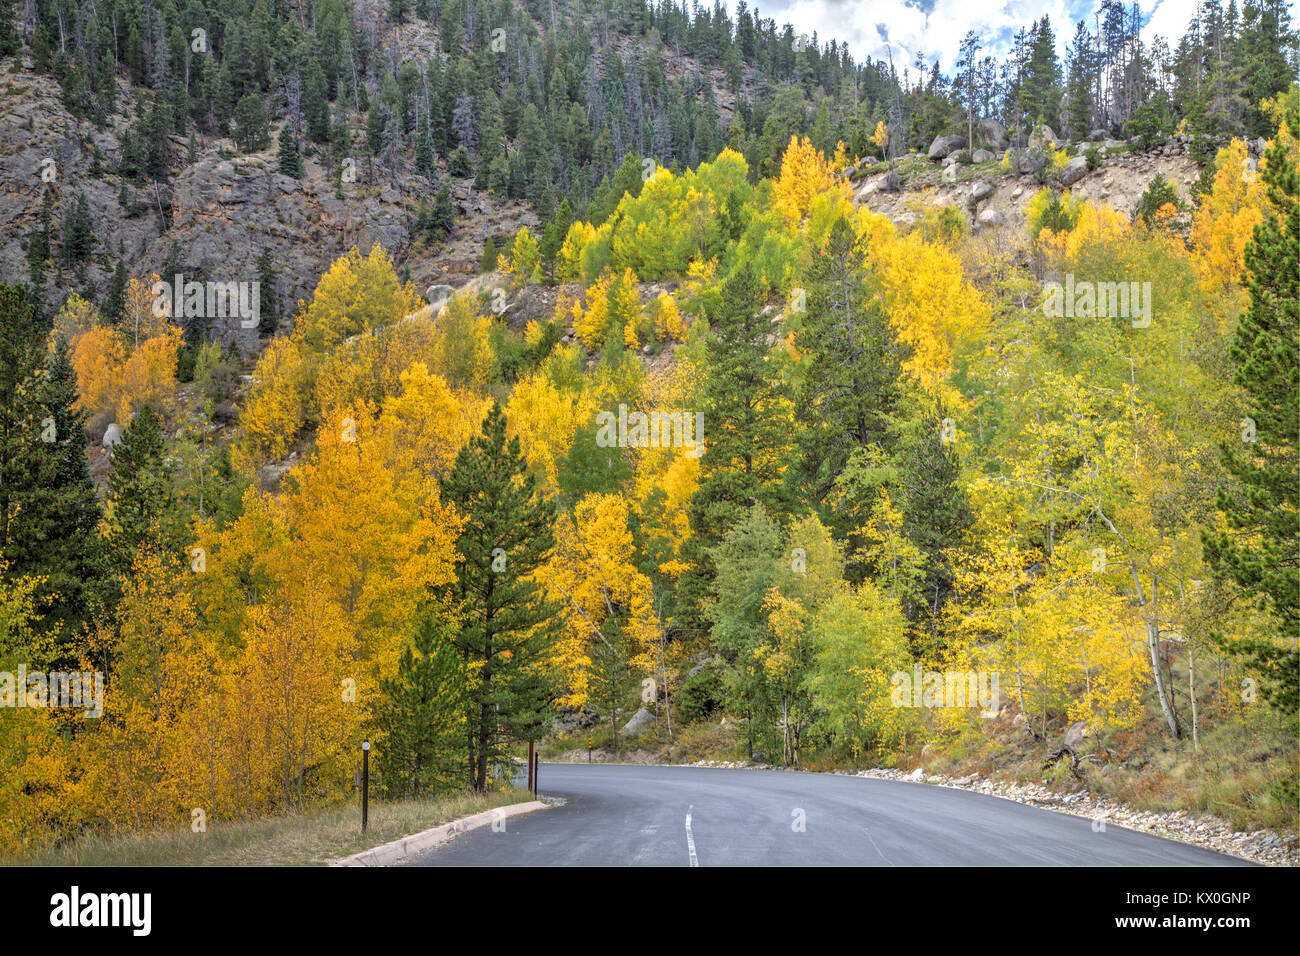 A mixture of aspen leaves transforming from green to yellow in autumn. - Stock Image